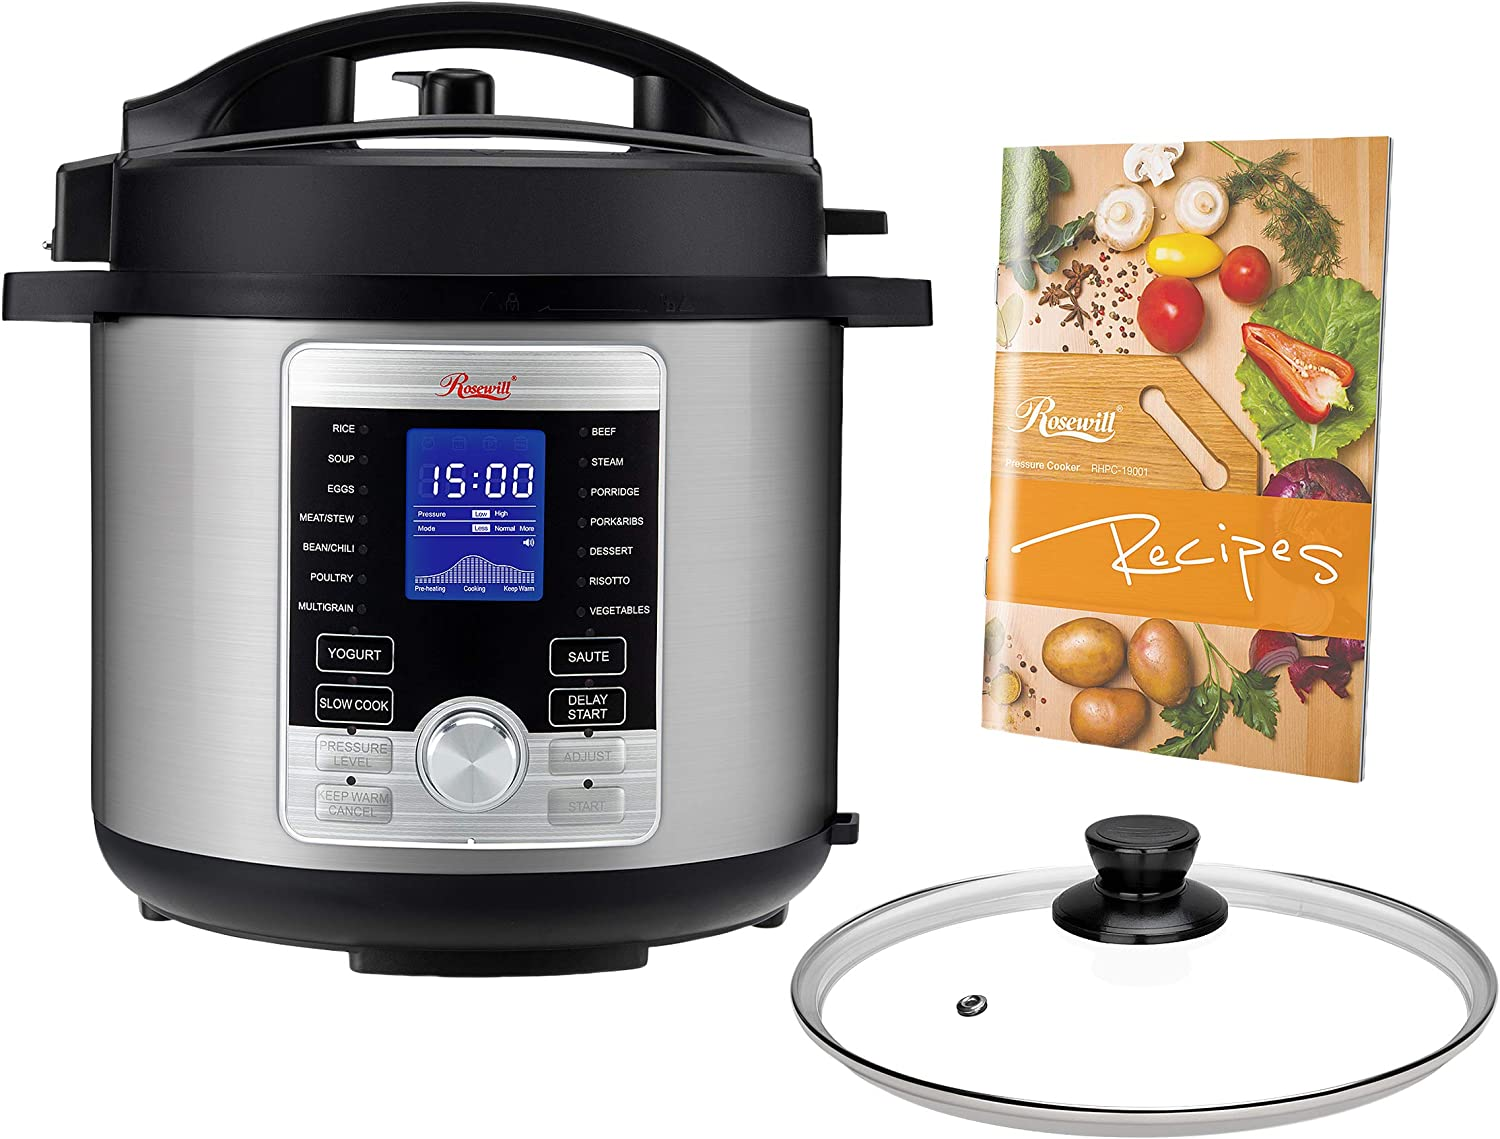 Rosewill RHPC-19001 6-QT Pressure Cooker 10-in-1 Programmable Instapot Multicooker, Slow Cooker, Rice, Yogurt, Cake, Eggs, Sauté, Vegetable Steamer, Warmer, Sterilizer w/ 17 Cooking Presets